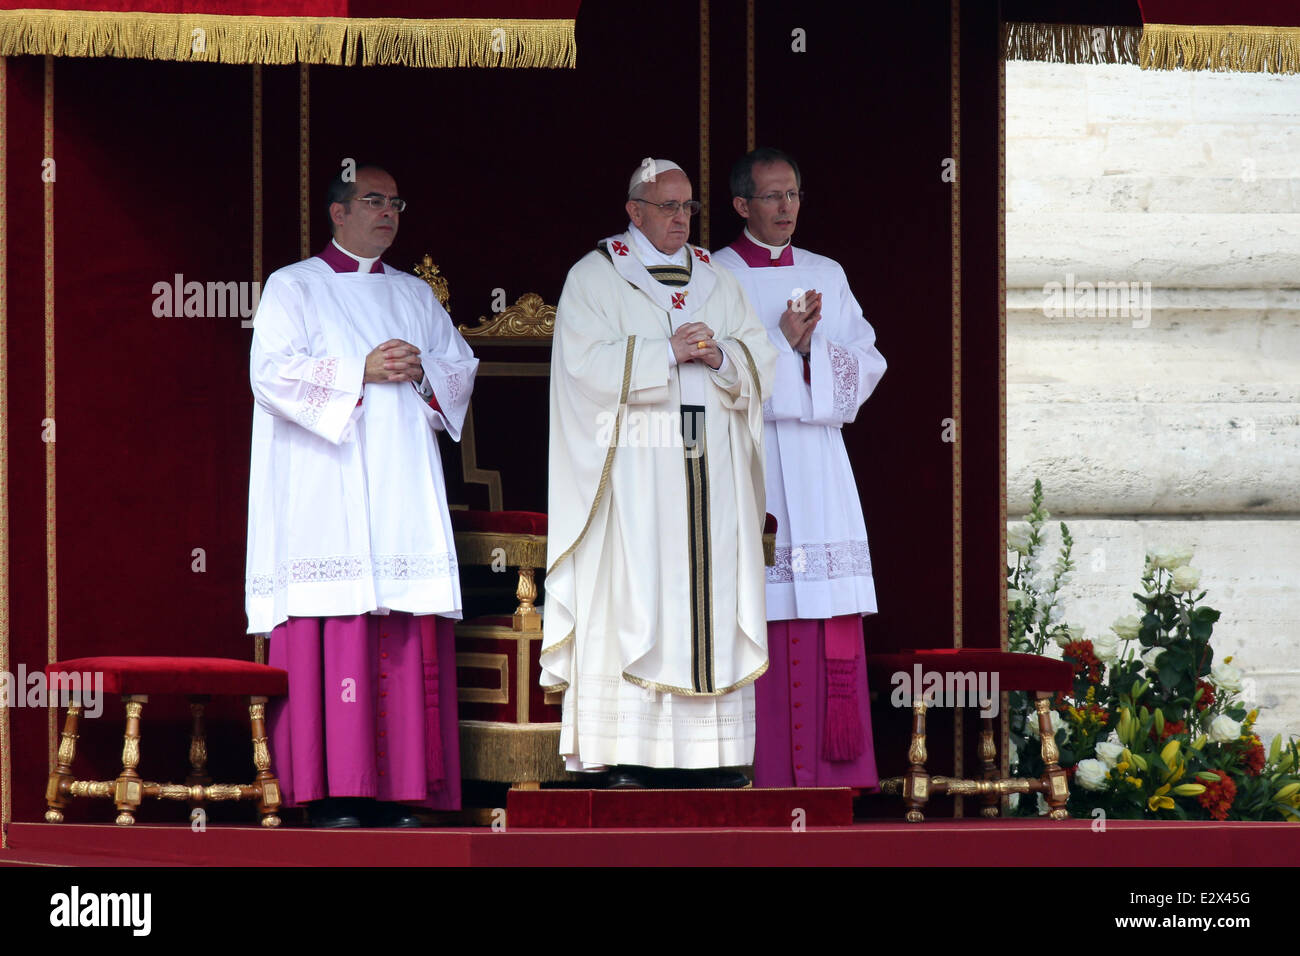 Pope Francis inaugurates his papacy at a Mass in Rome  Featuring: Pope Francis Where: Rome, Italy When: 19 Mar 2013 - Stock Image